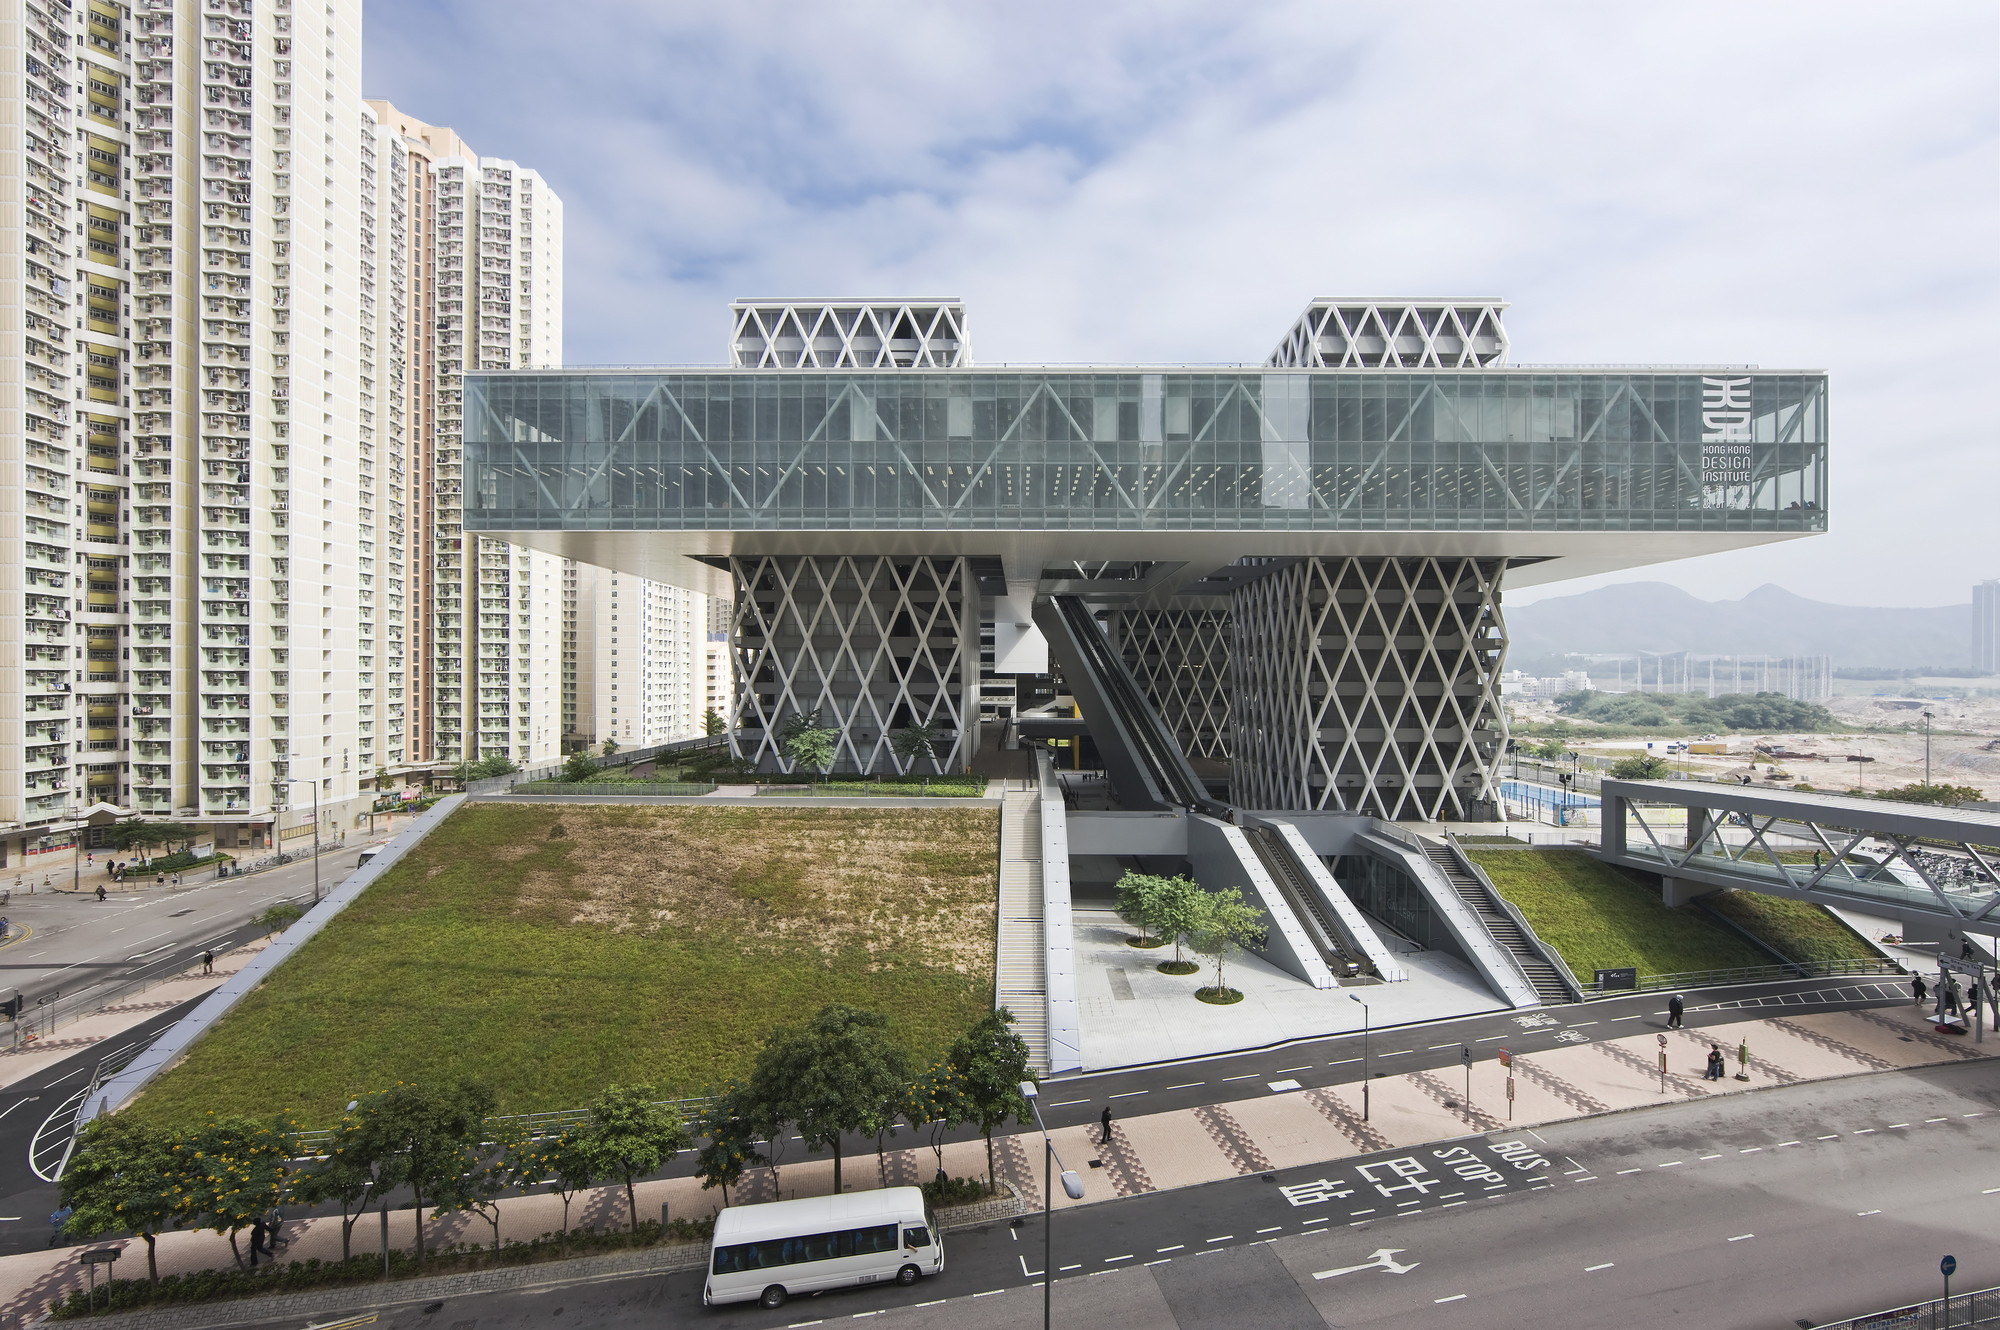 Hong Kong Institute of Design / CAAU, © Sergio Pirrone